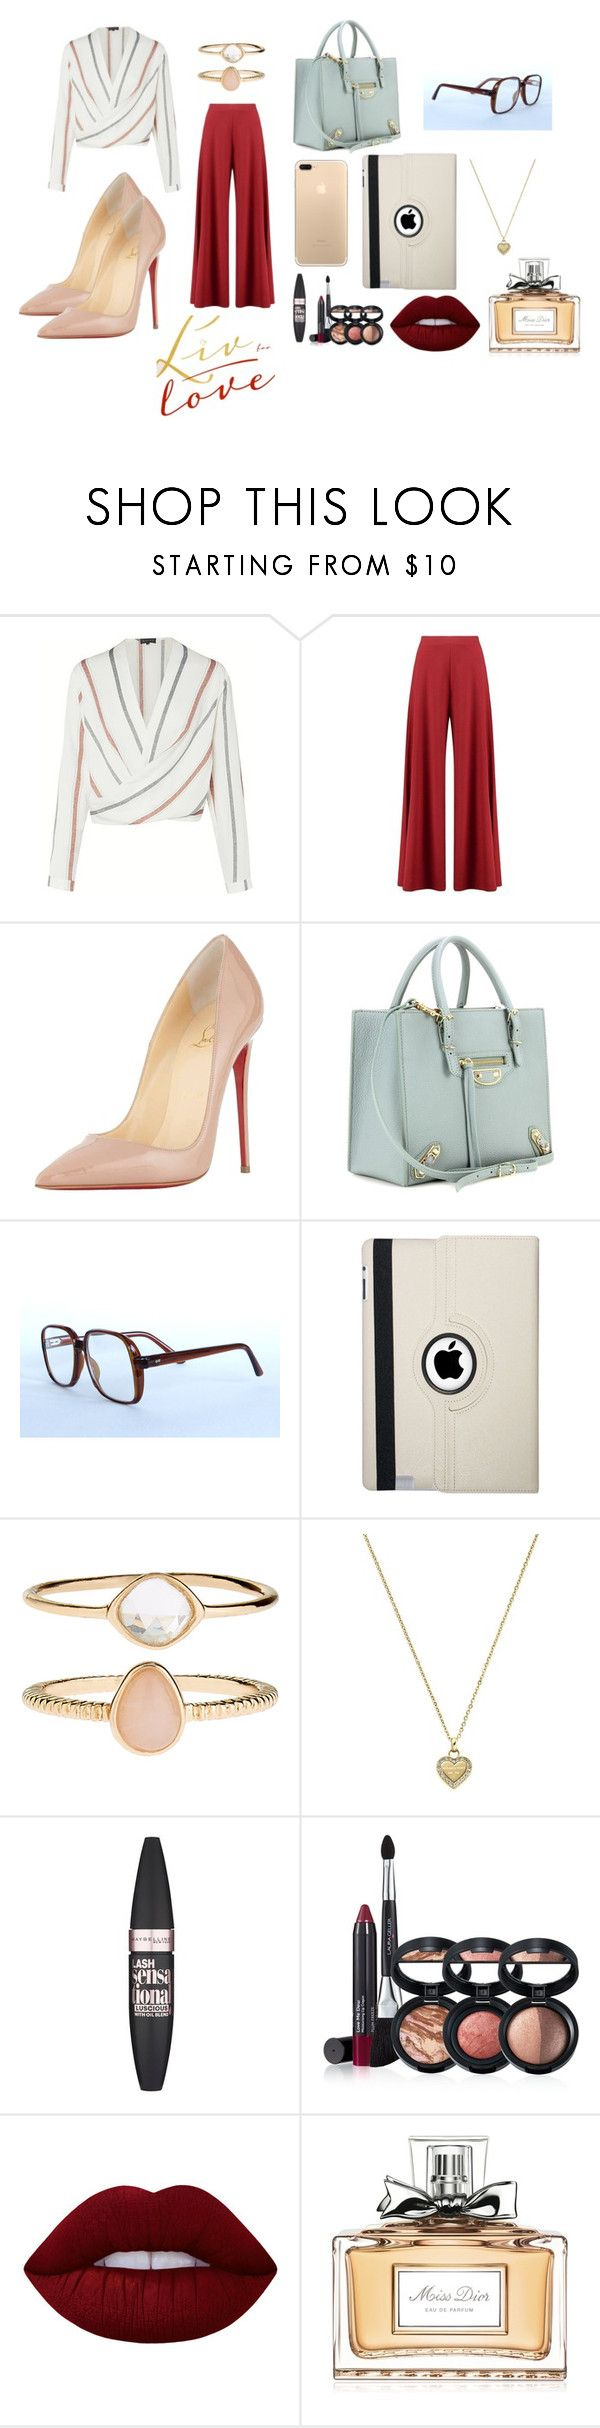 """""""#love #fashion"""" by elifaydogan0 ❤ liked on Polyvore featuring Boohoo, Christian Louboutin, Balenciaga, Vintage Eyewear, Natico, Accessorize, Michael Kors, Maybelline, Laura Geller and Lime Crime"""